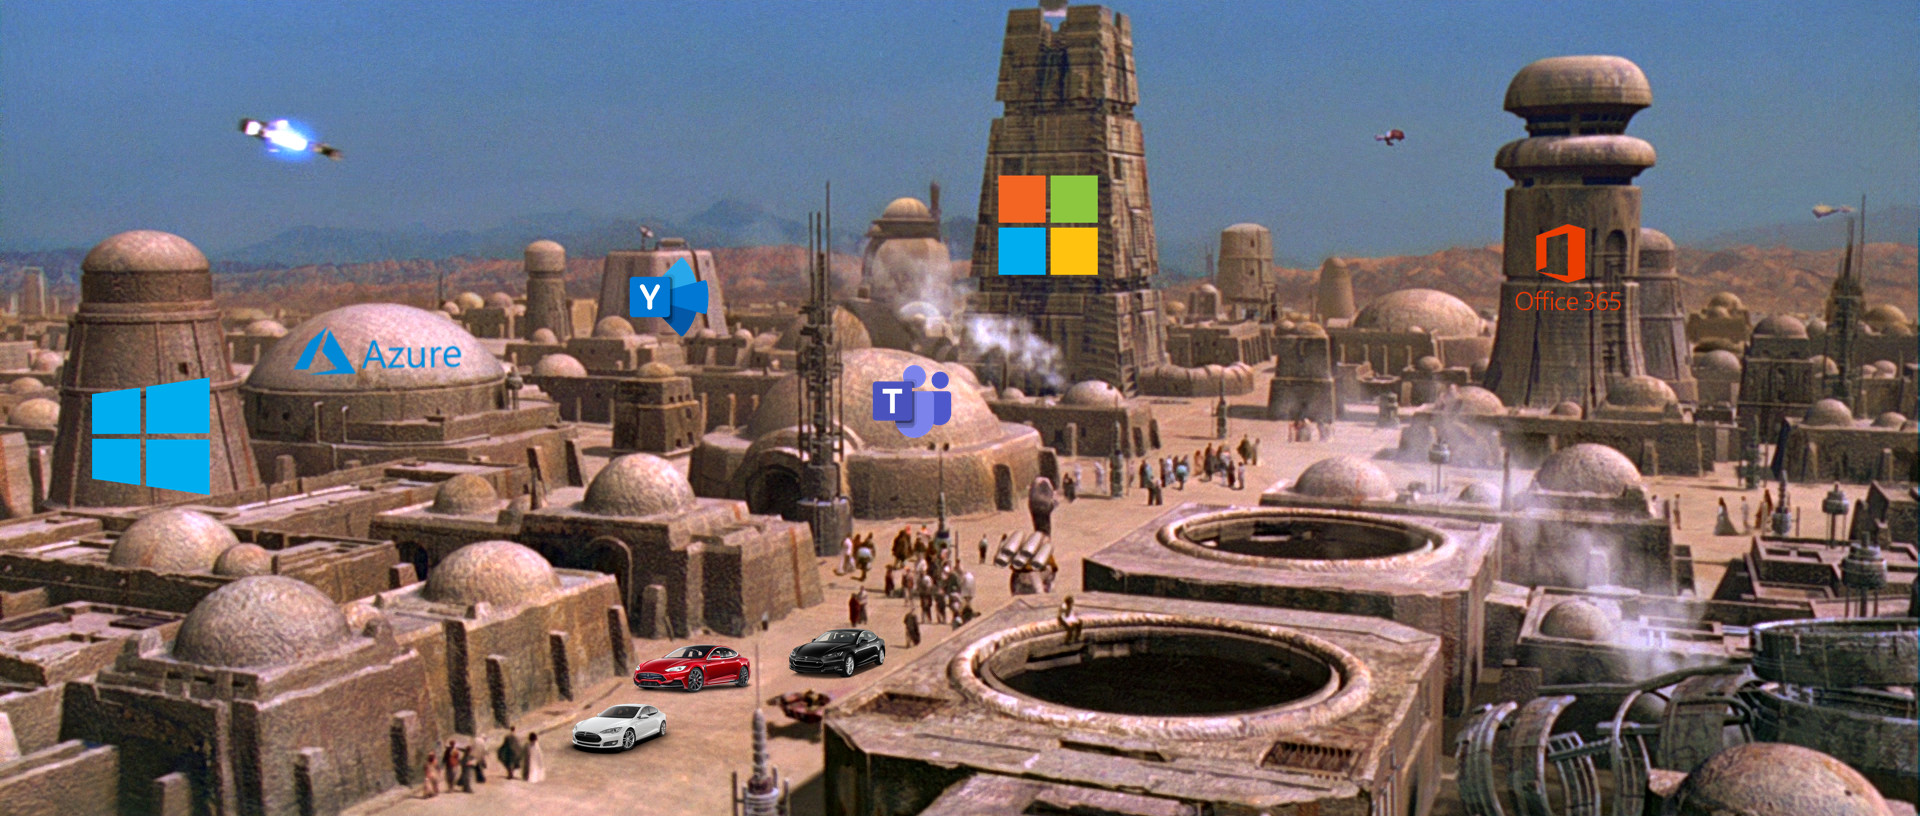 Army of Microsoft